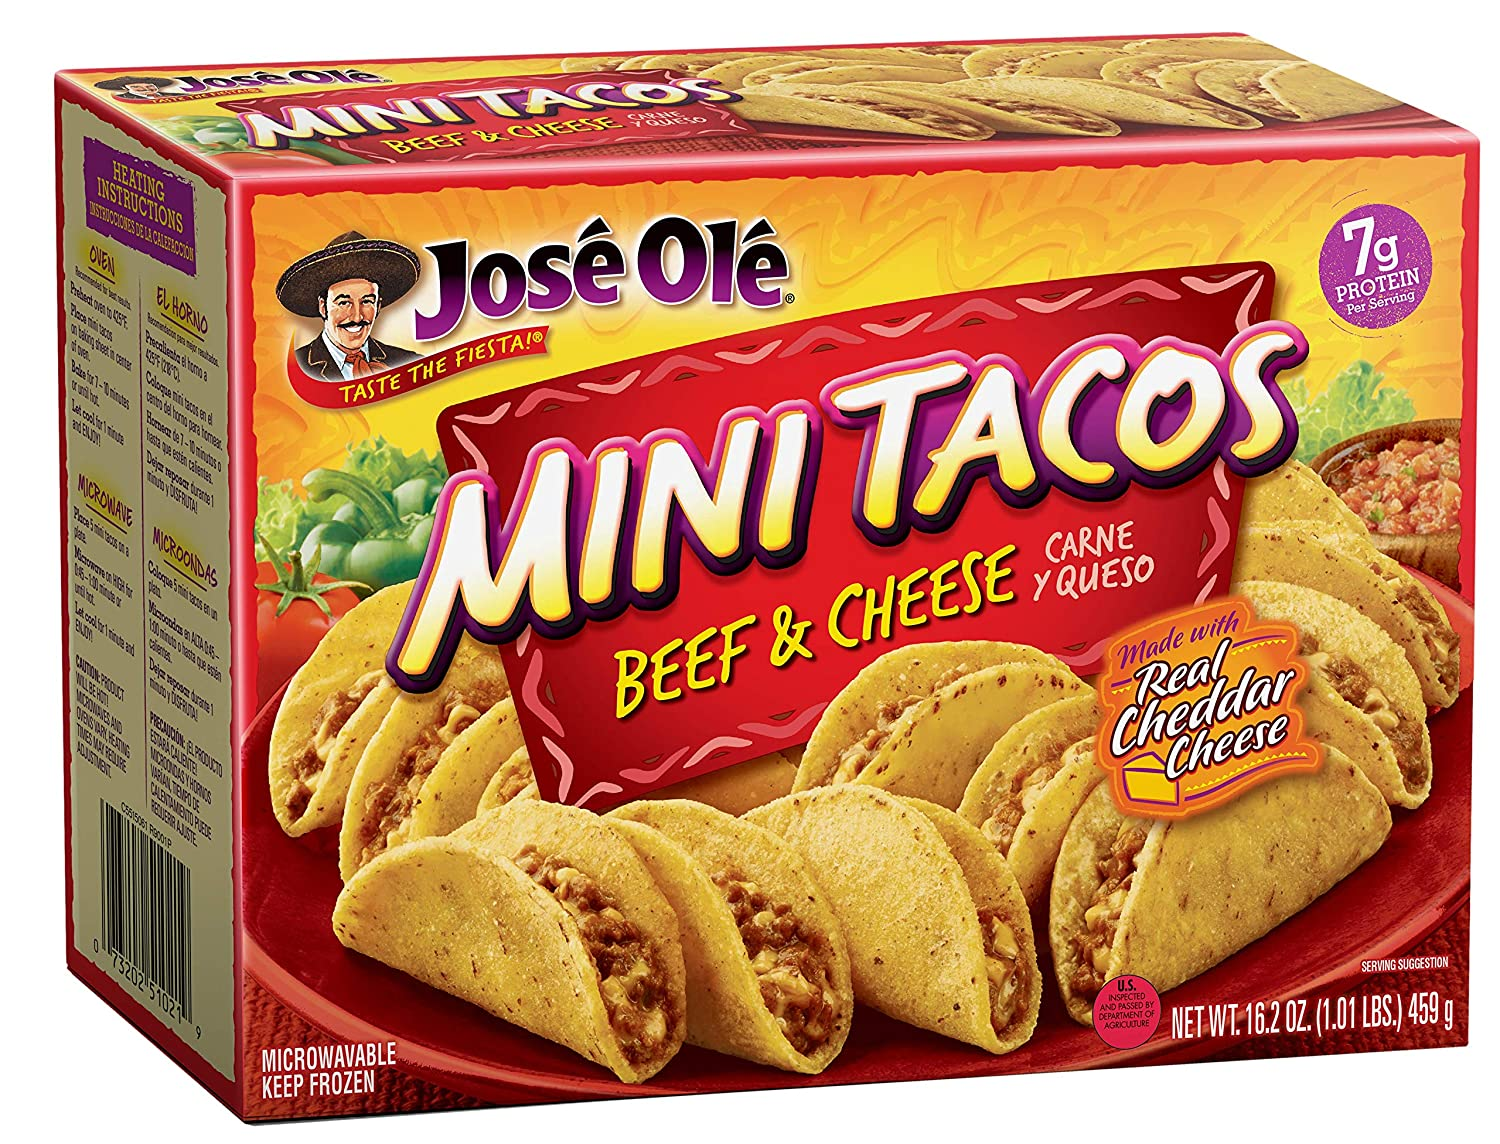 Jose Ole Mini Tacos Frozen, Beef & Cheese, 16.2 Ounce